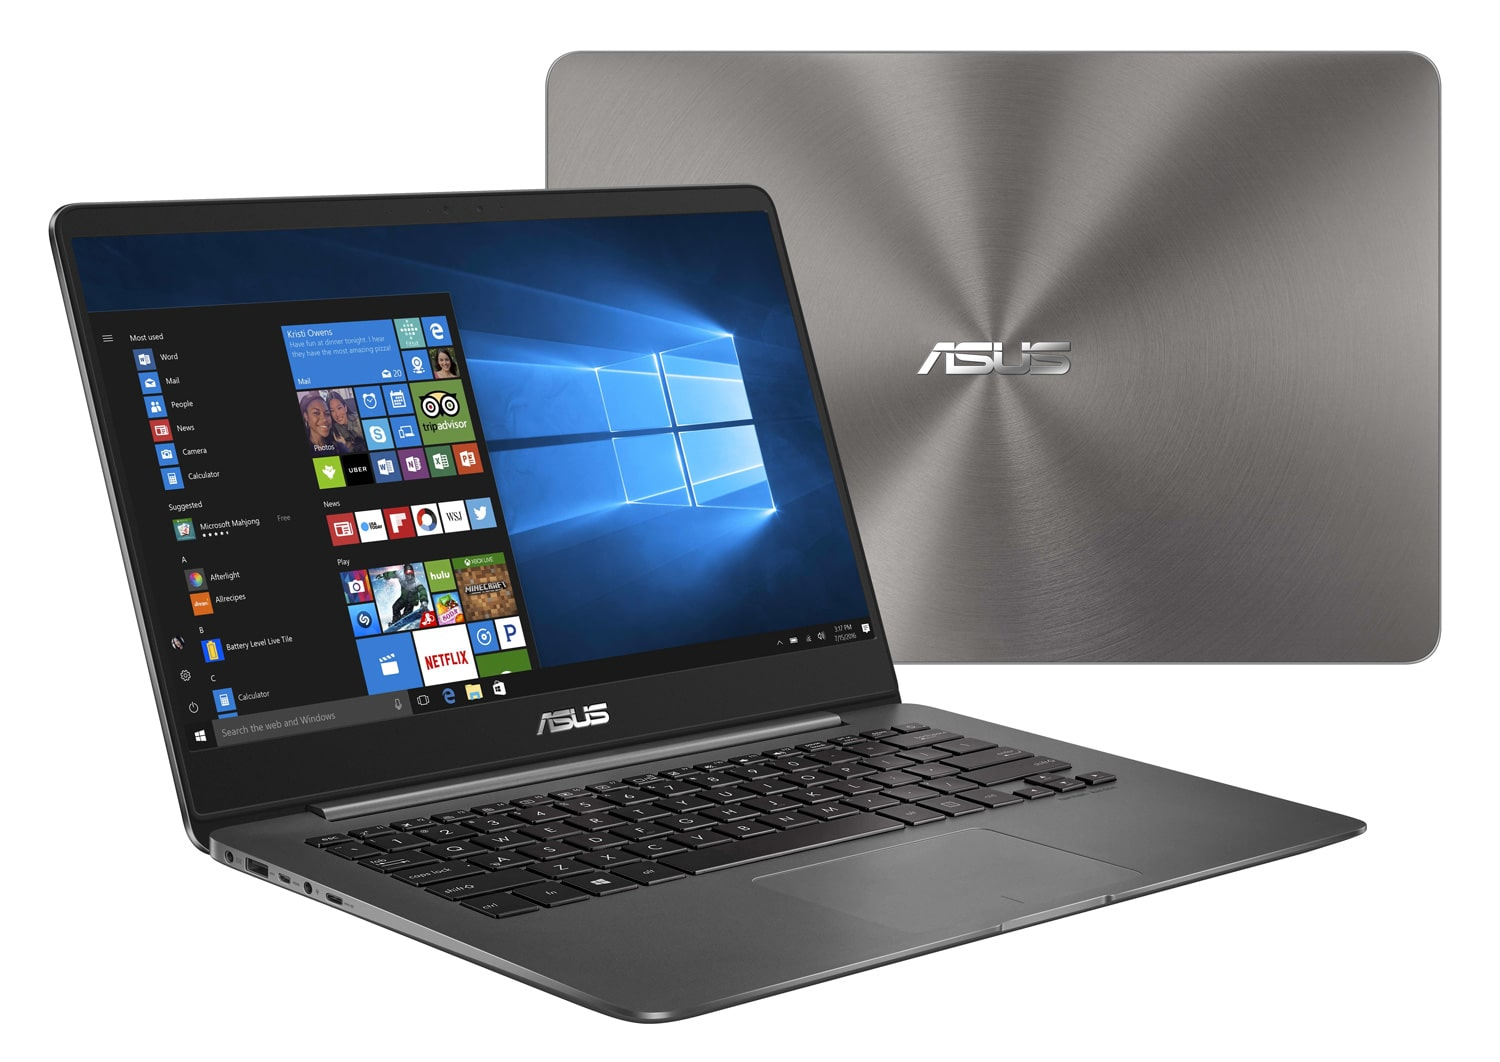 Asus Zenbook UX430UA-GV038T à 699€, Ultrabook 14 pouces IPS Full SSD Kaby